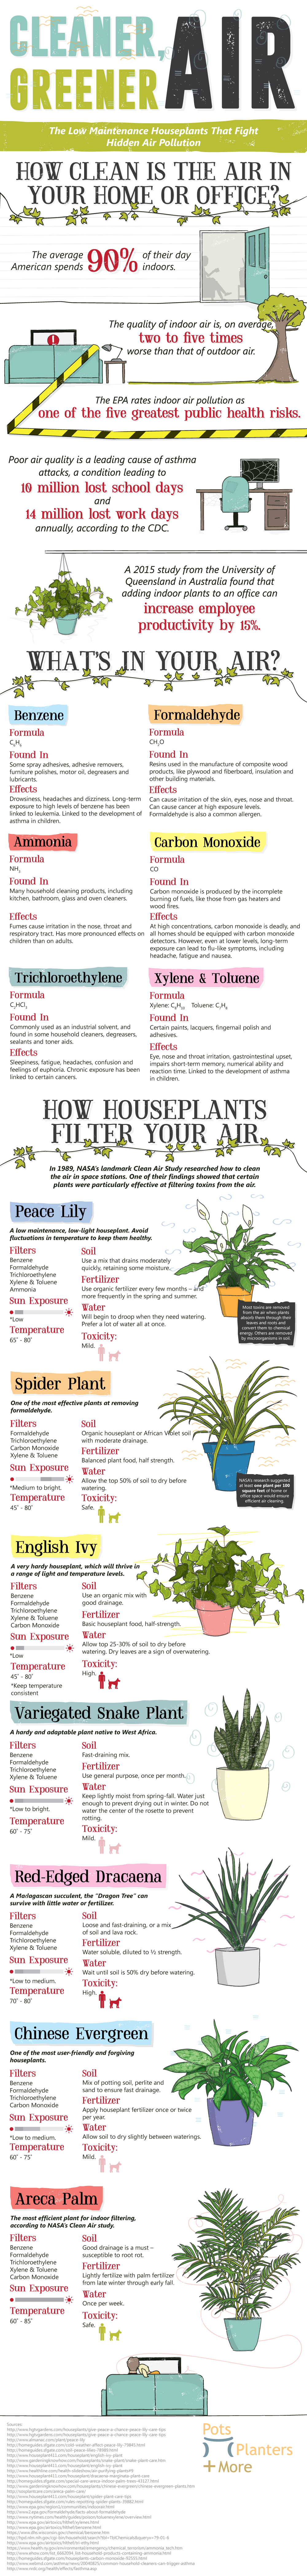 infographic on air quality and house plants that improve it